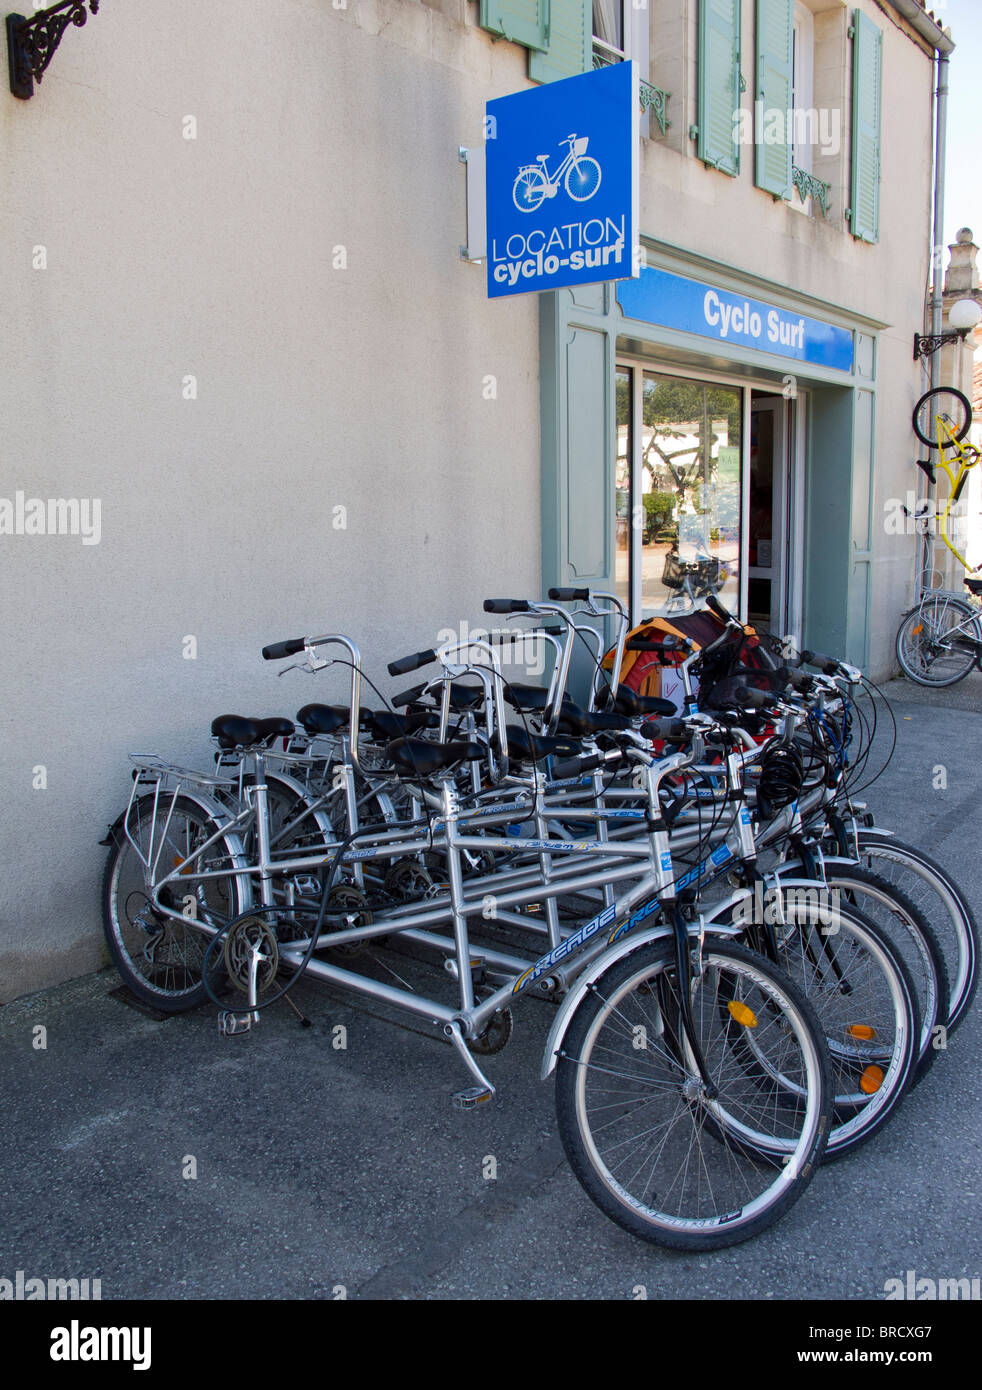 Tandem bicycles for hire in St Martin de Re on the Ile de Re, France - Stock Image